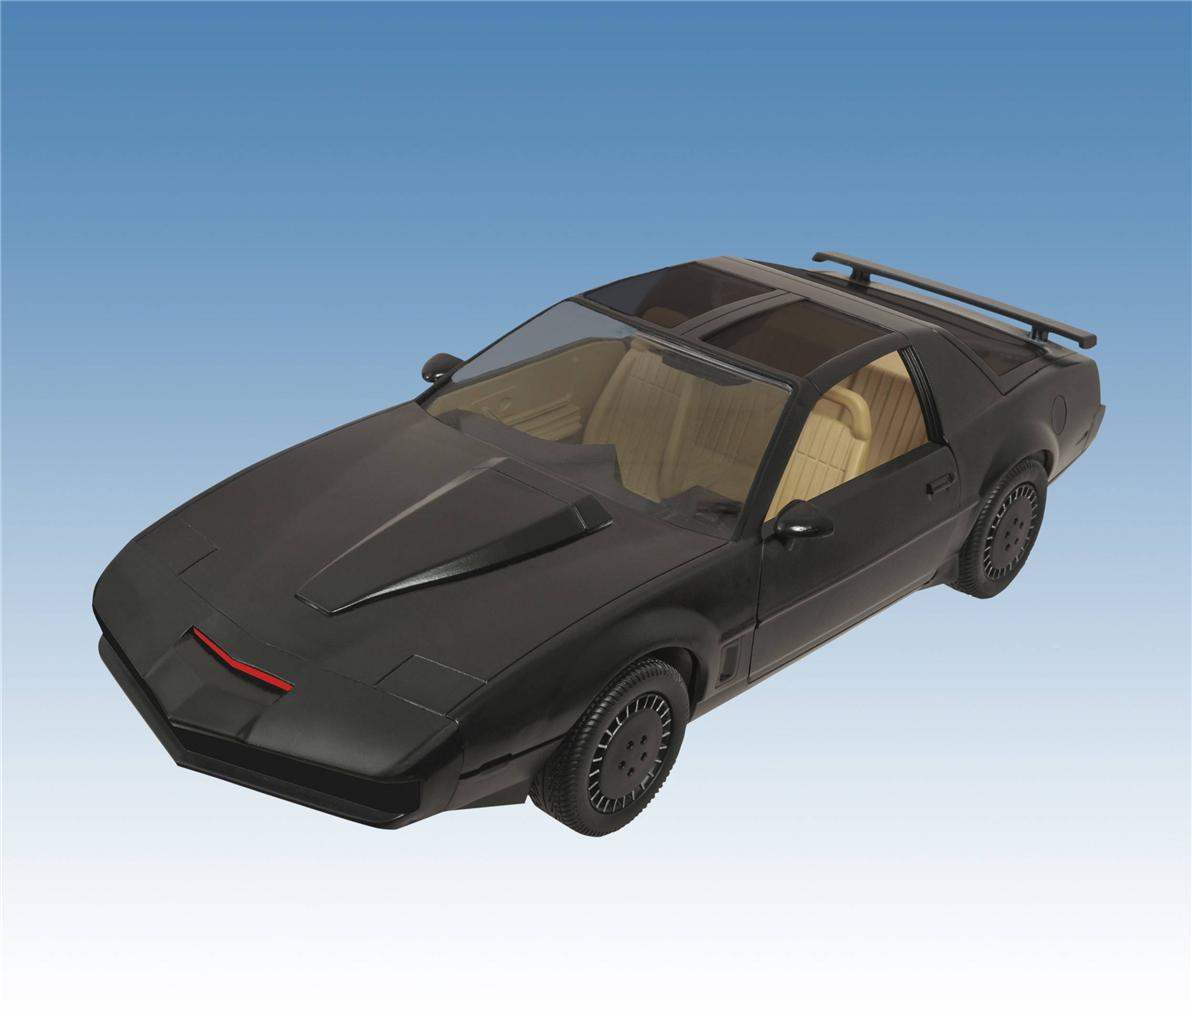 knight rider kitt 1 15 scale car diamond select ebay. Black Bedroom Furniture Sets. Home Design Ideas